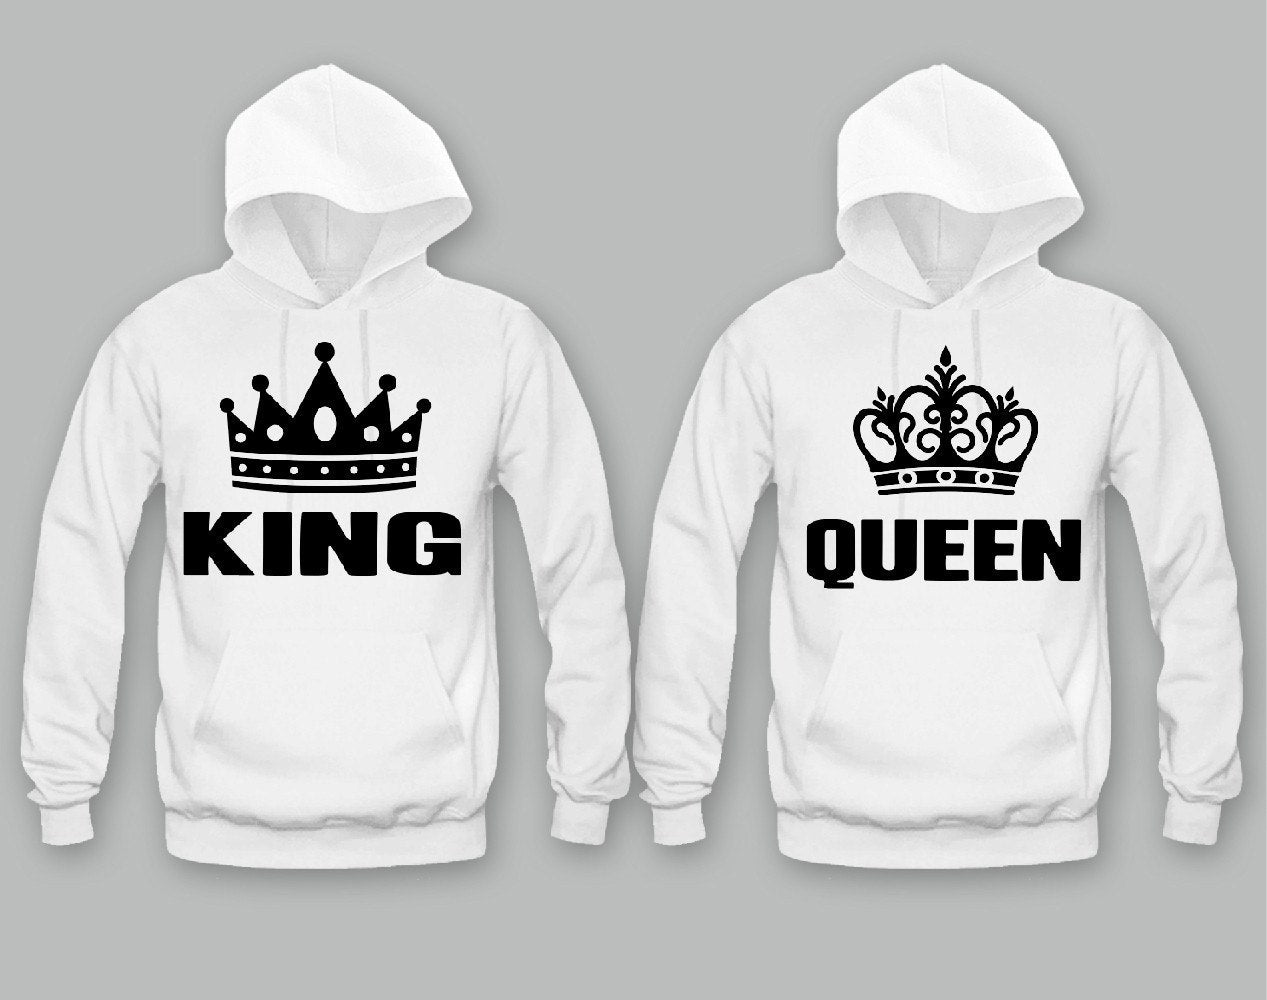 king and queen unisex couple matching hoodies. Black Bedroom Furniture Sets. Home Design Ideas